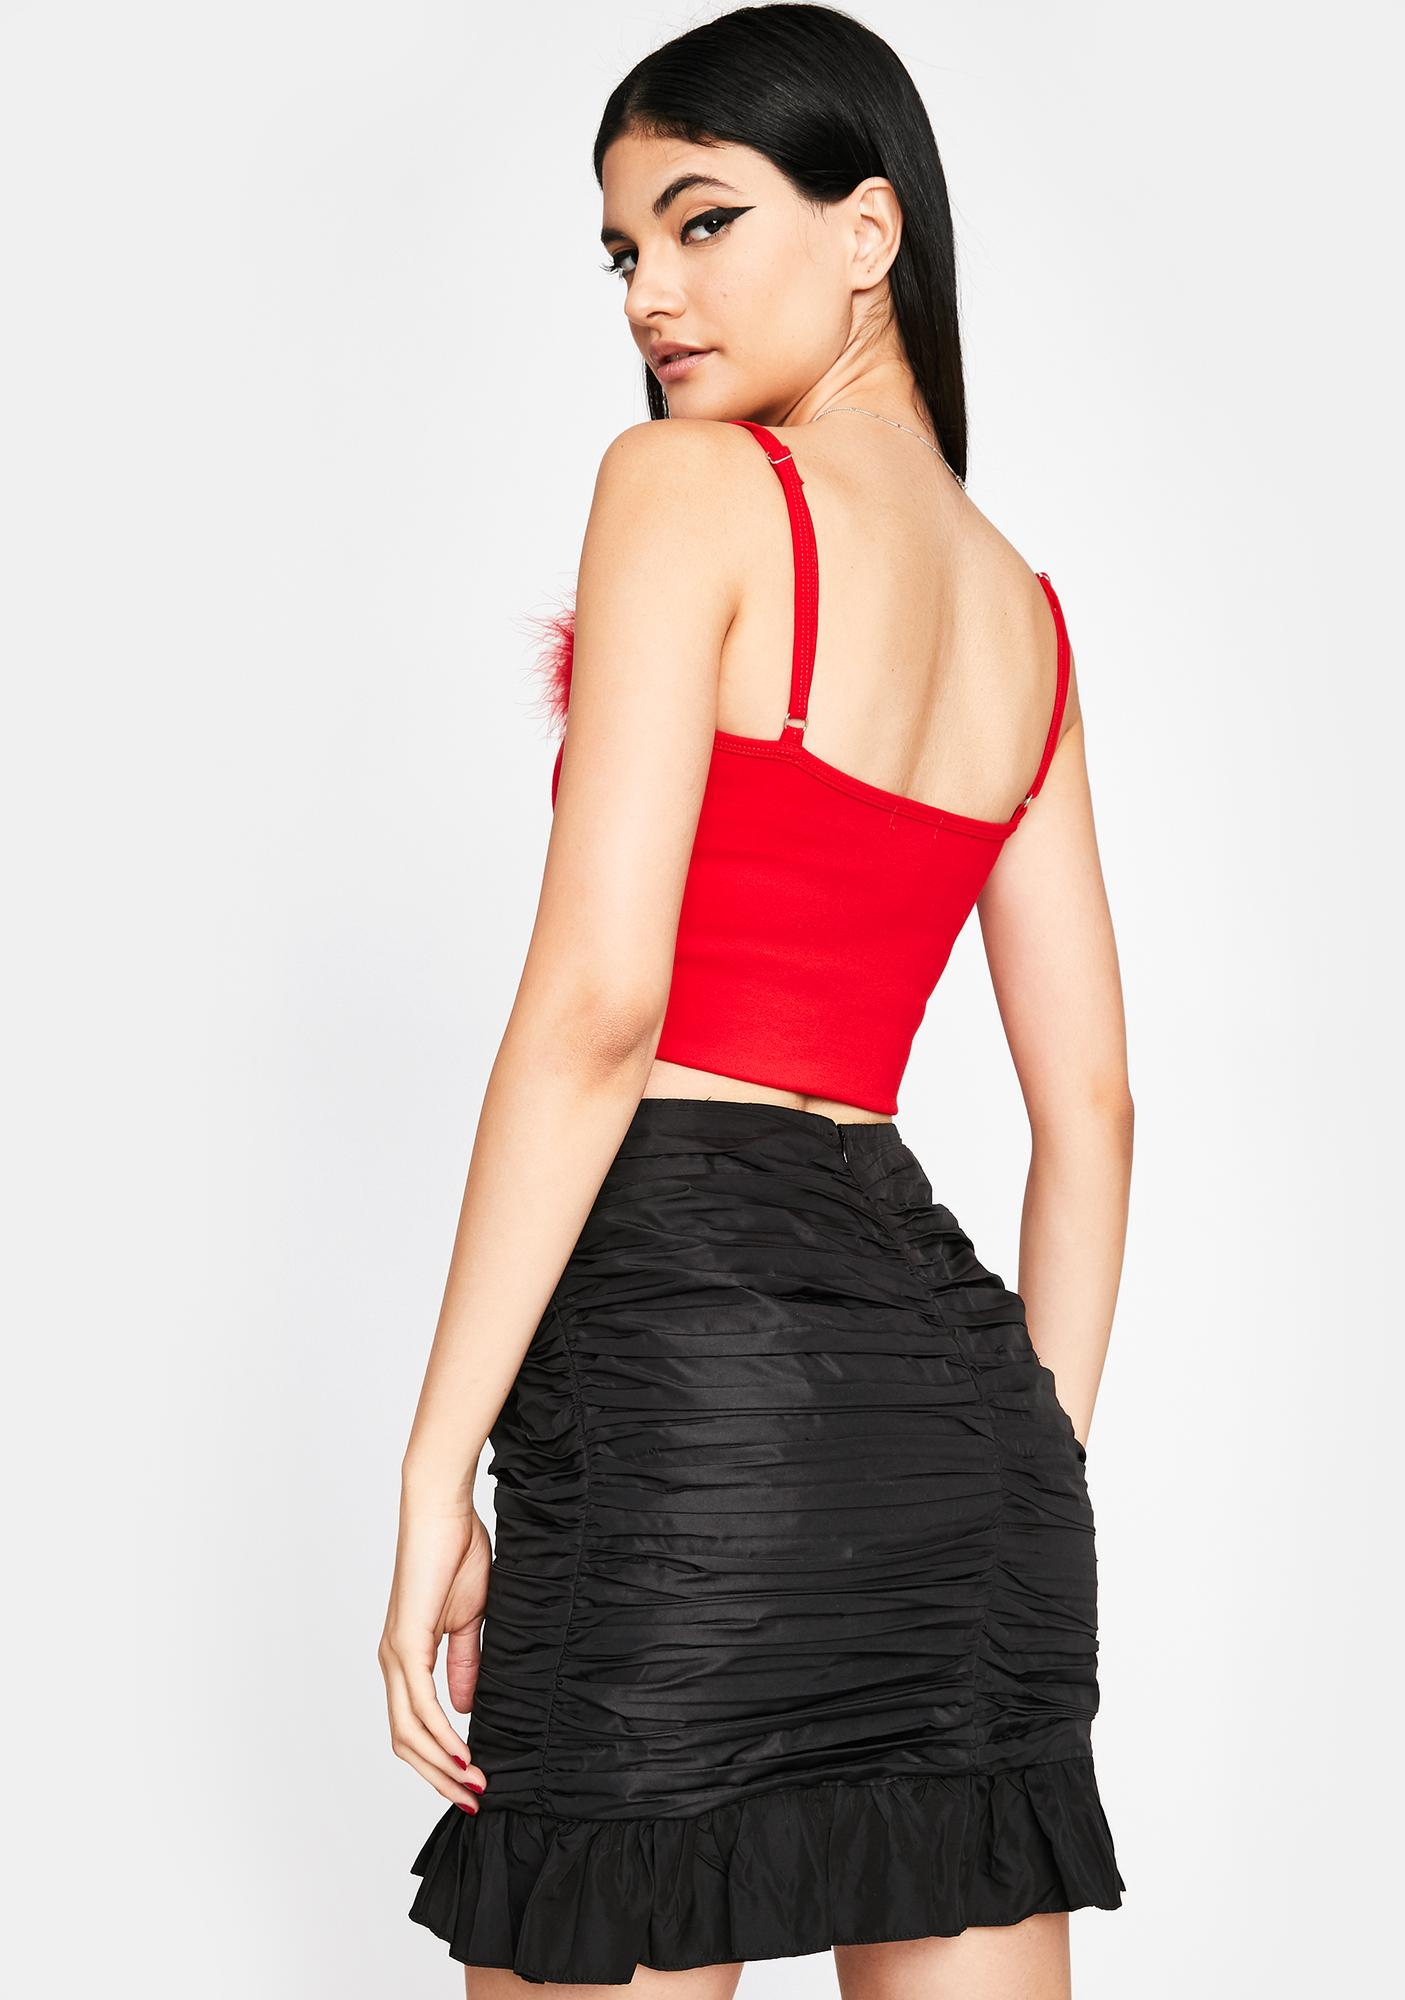 Frisky Nights Ruffle Skirt